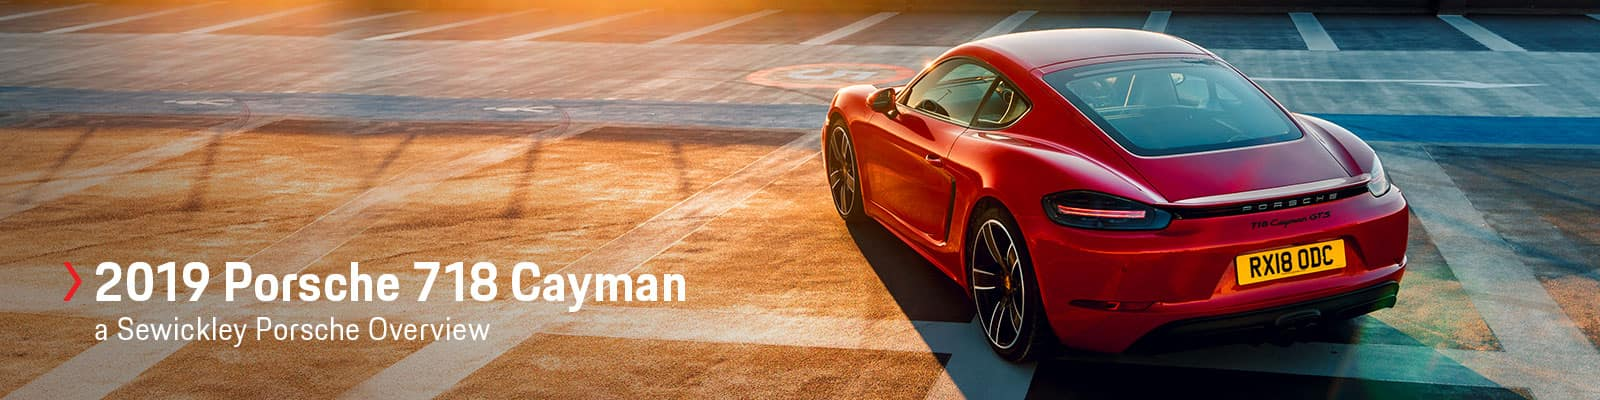 2019 Porsche 718 Cayman Model Overview at Sewickley Porsche